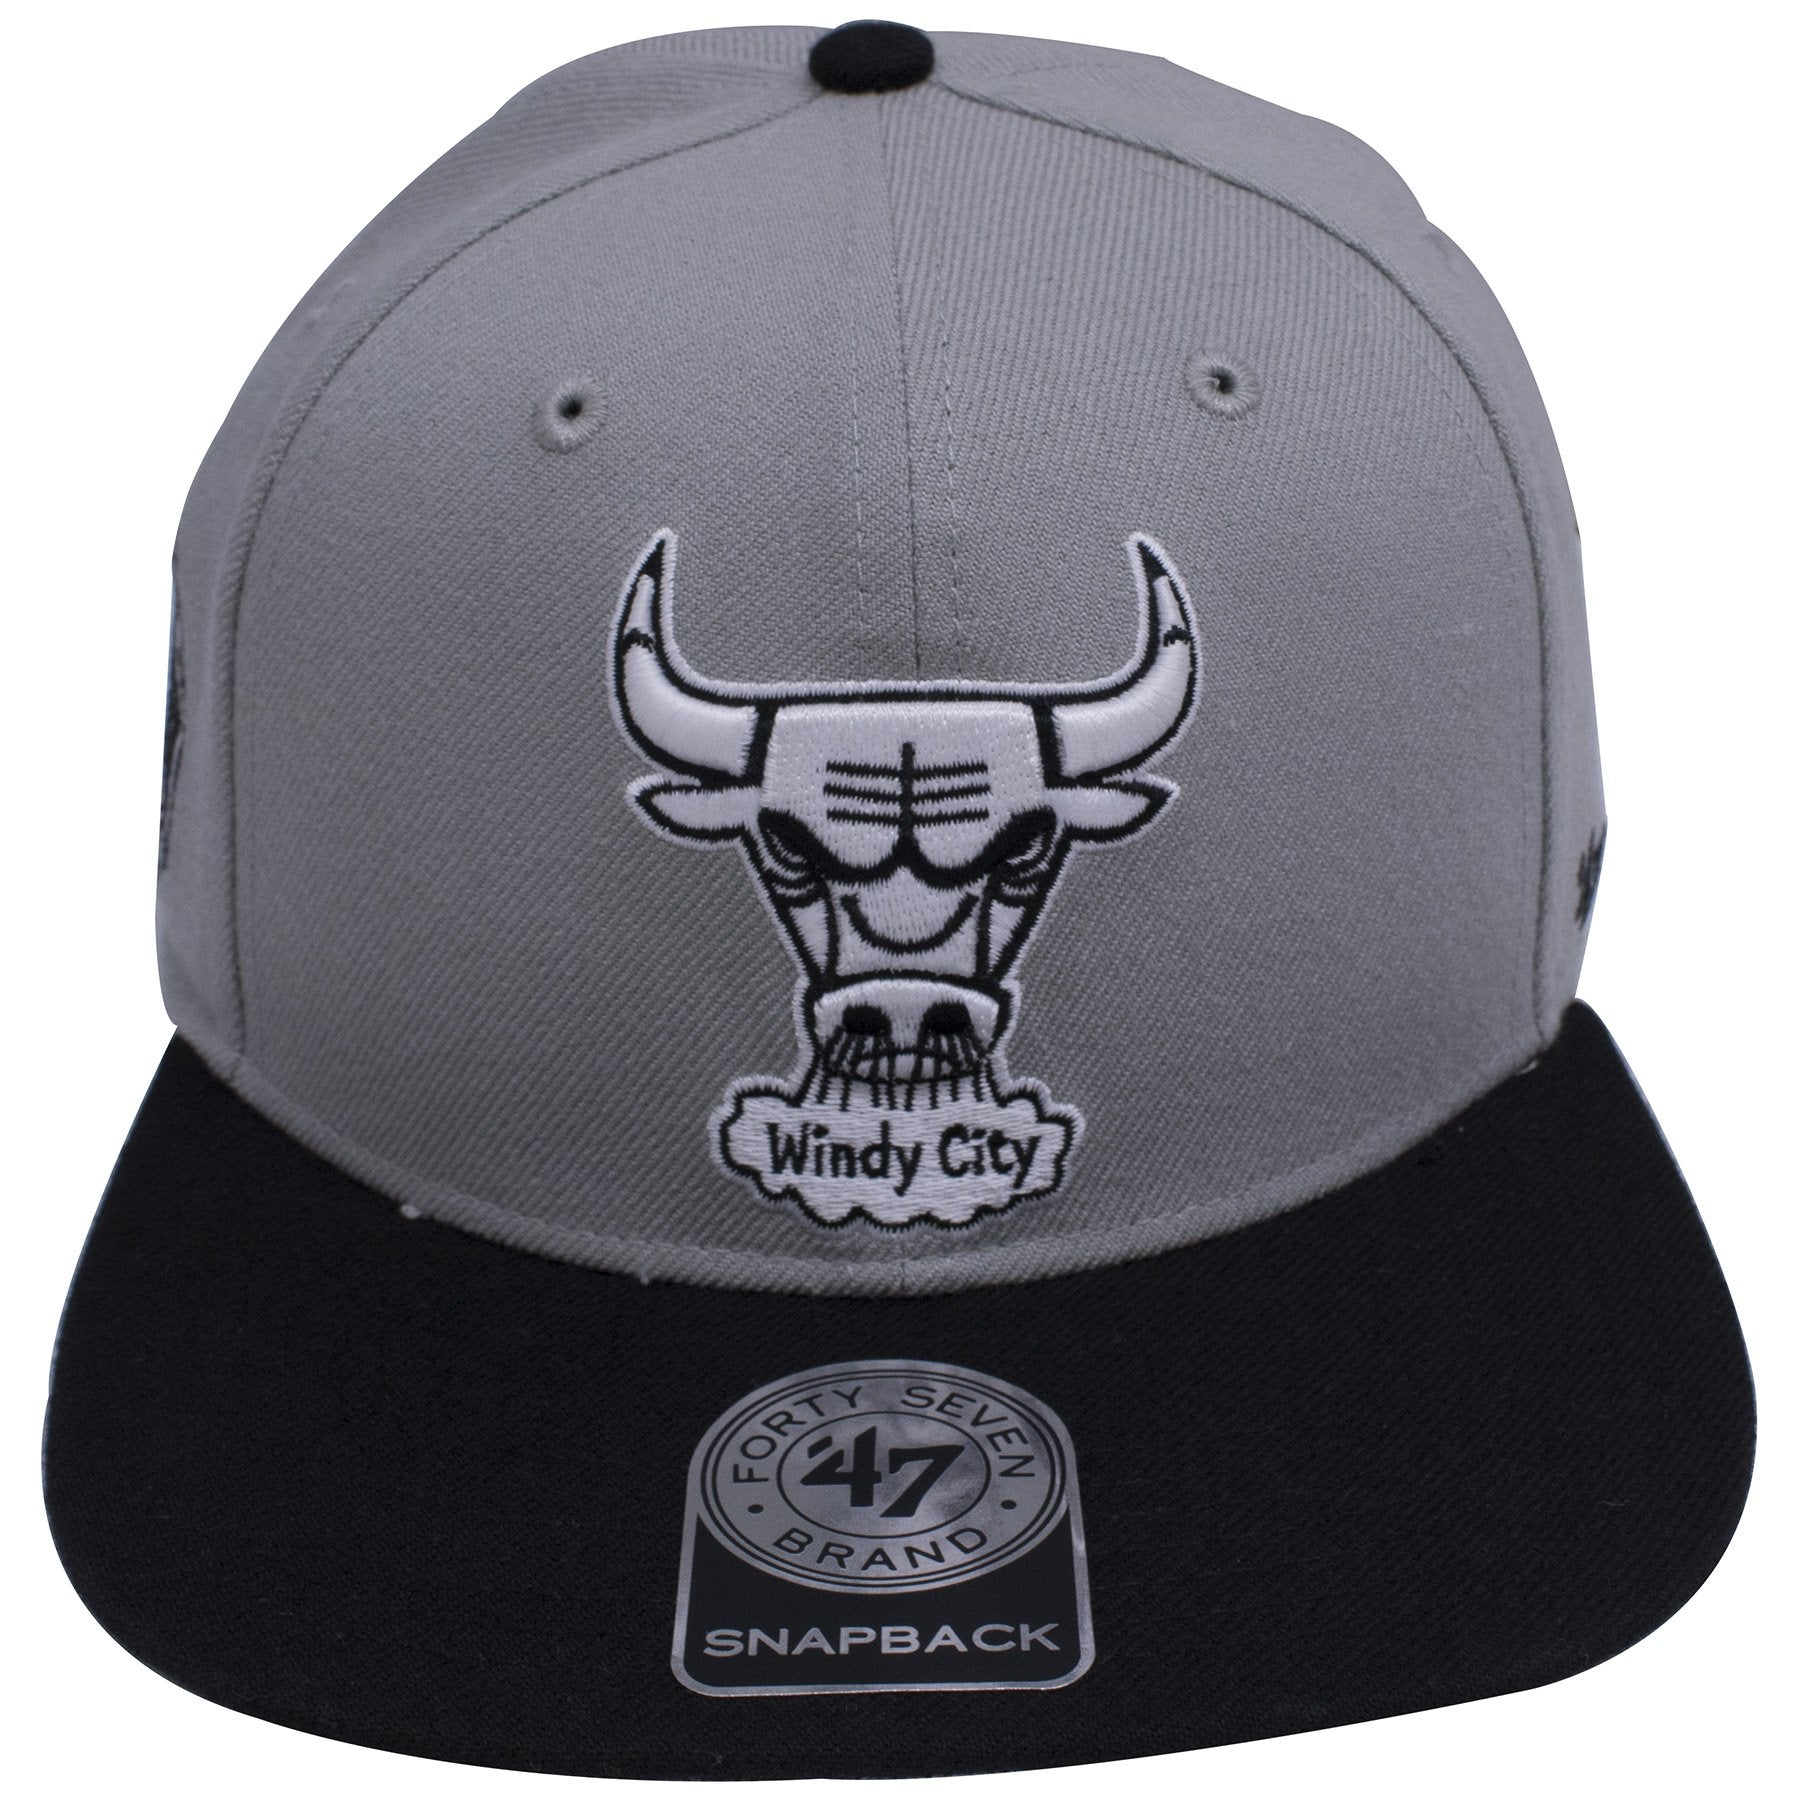 on the front of the chicago bulls air jordan 4 og sneaker matching snapback  hat is ac888b8be147